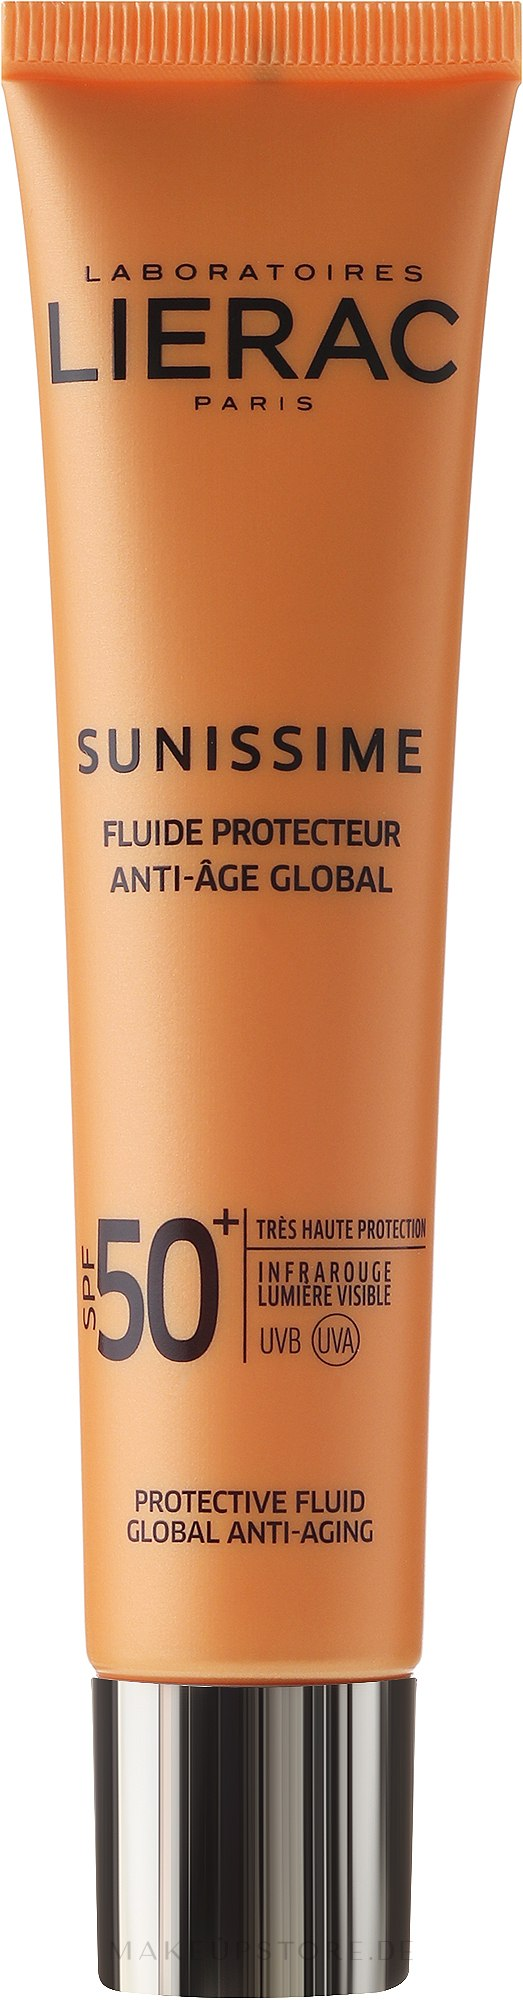 Vitalisierendes Schutzfluid LSF 50+ Globales Anti-Aging - Lierac Sunissime Fluide Protecteur Anti-Age SPF 50+ — Bild 40 ml